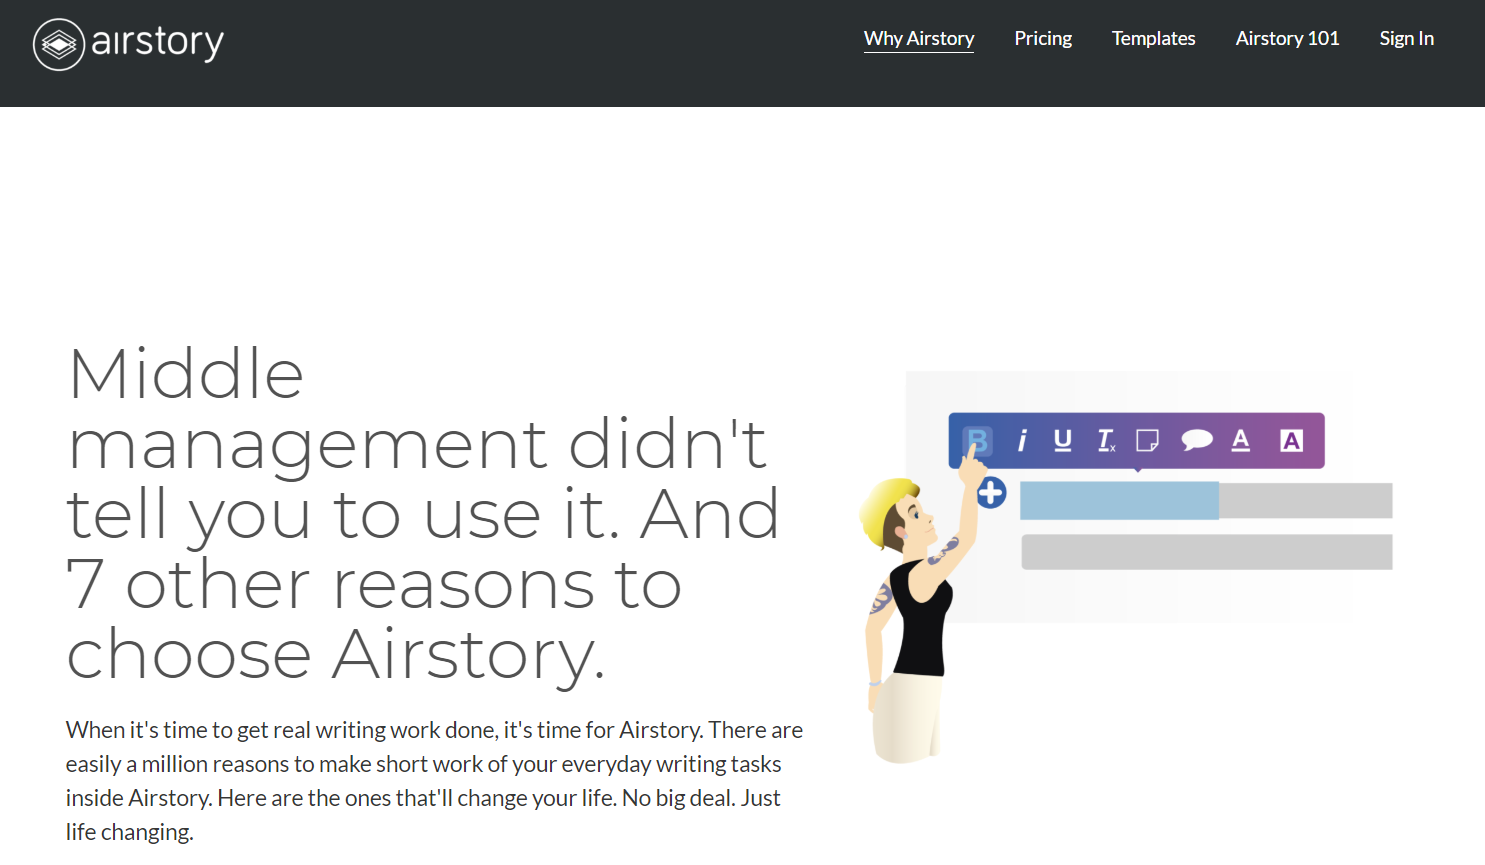 airstory-web-page-example2